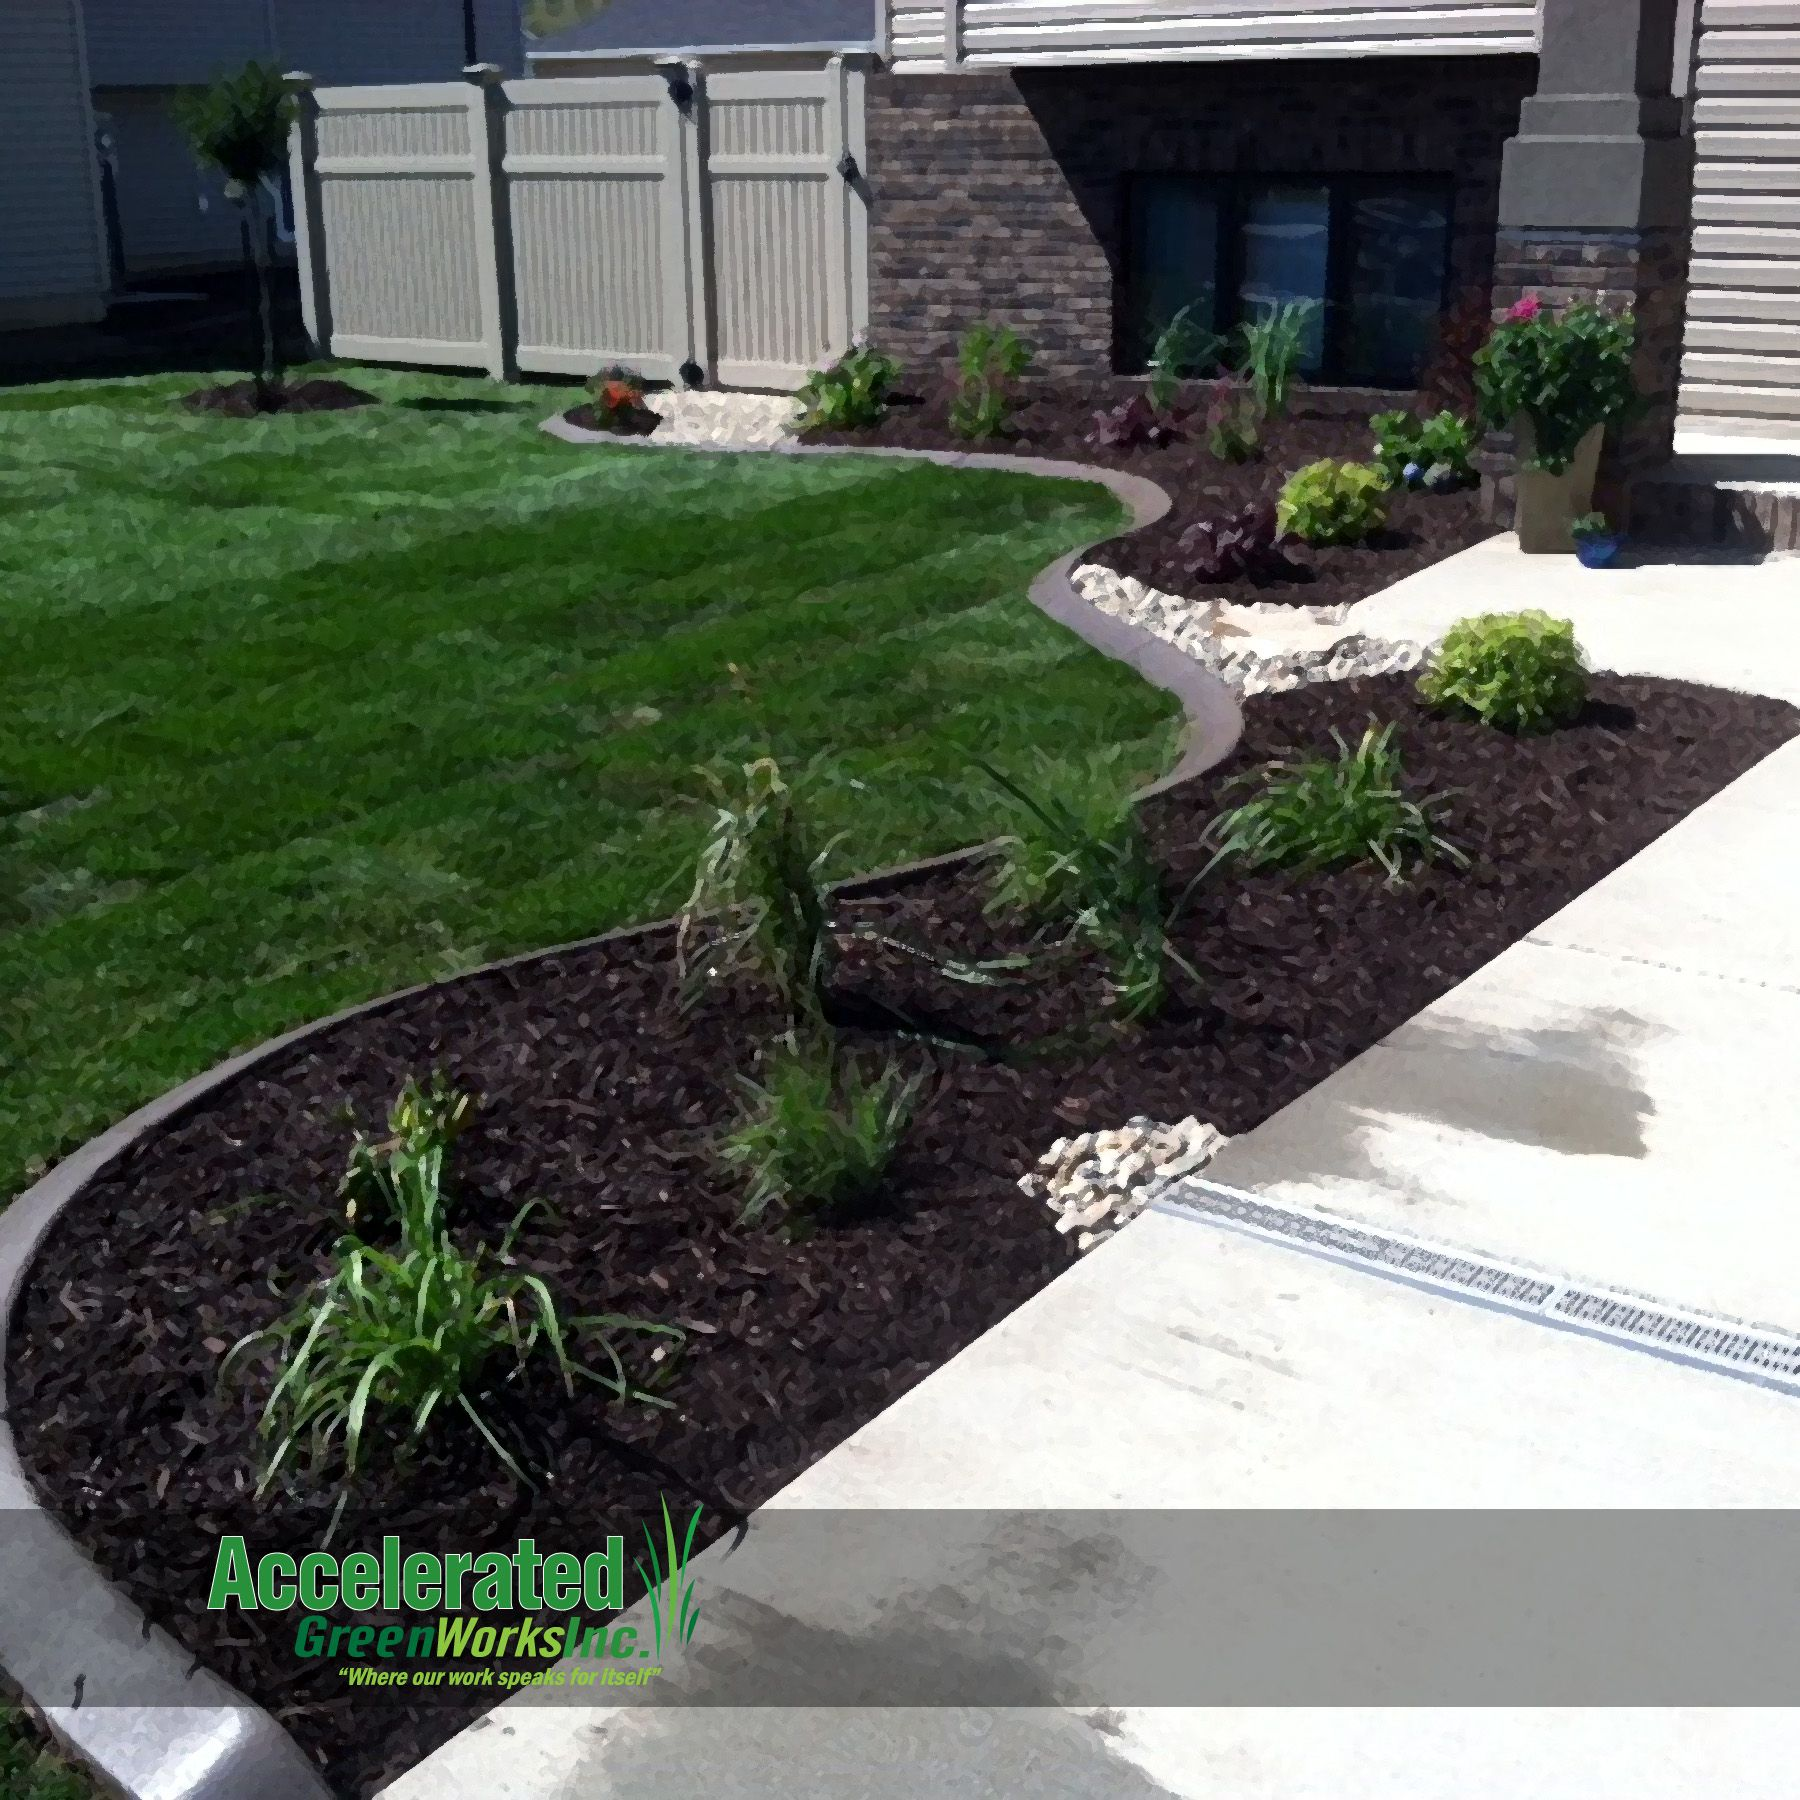 Brick Around Shed With Mulch And Flowers: Front Entryway With Concrete Curb Edging, Mink Mulch And